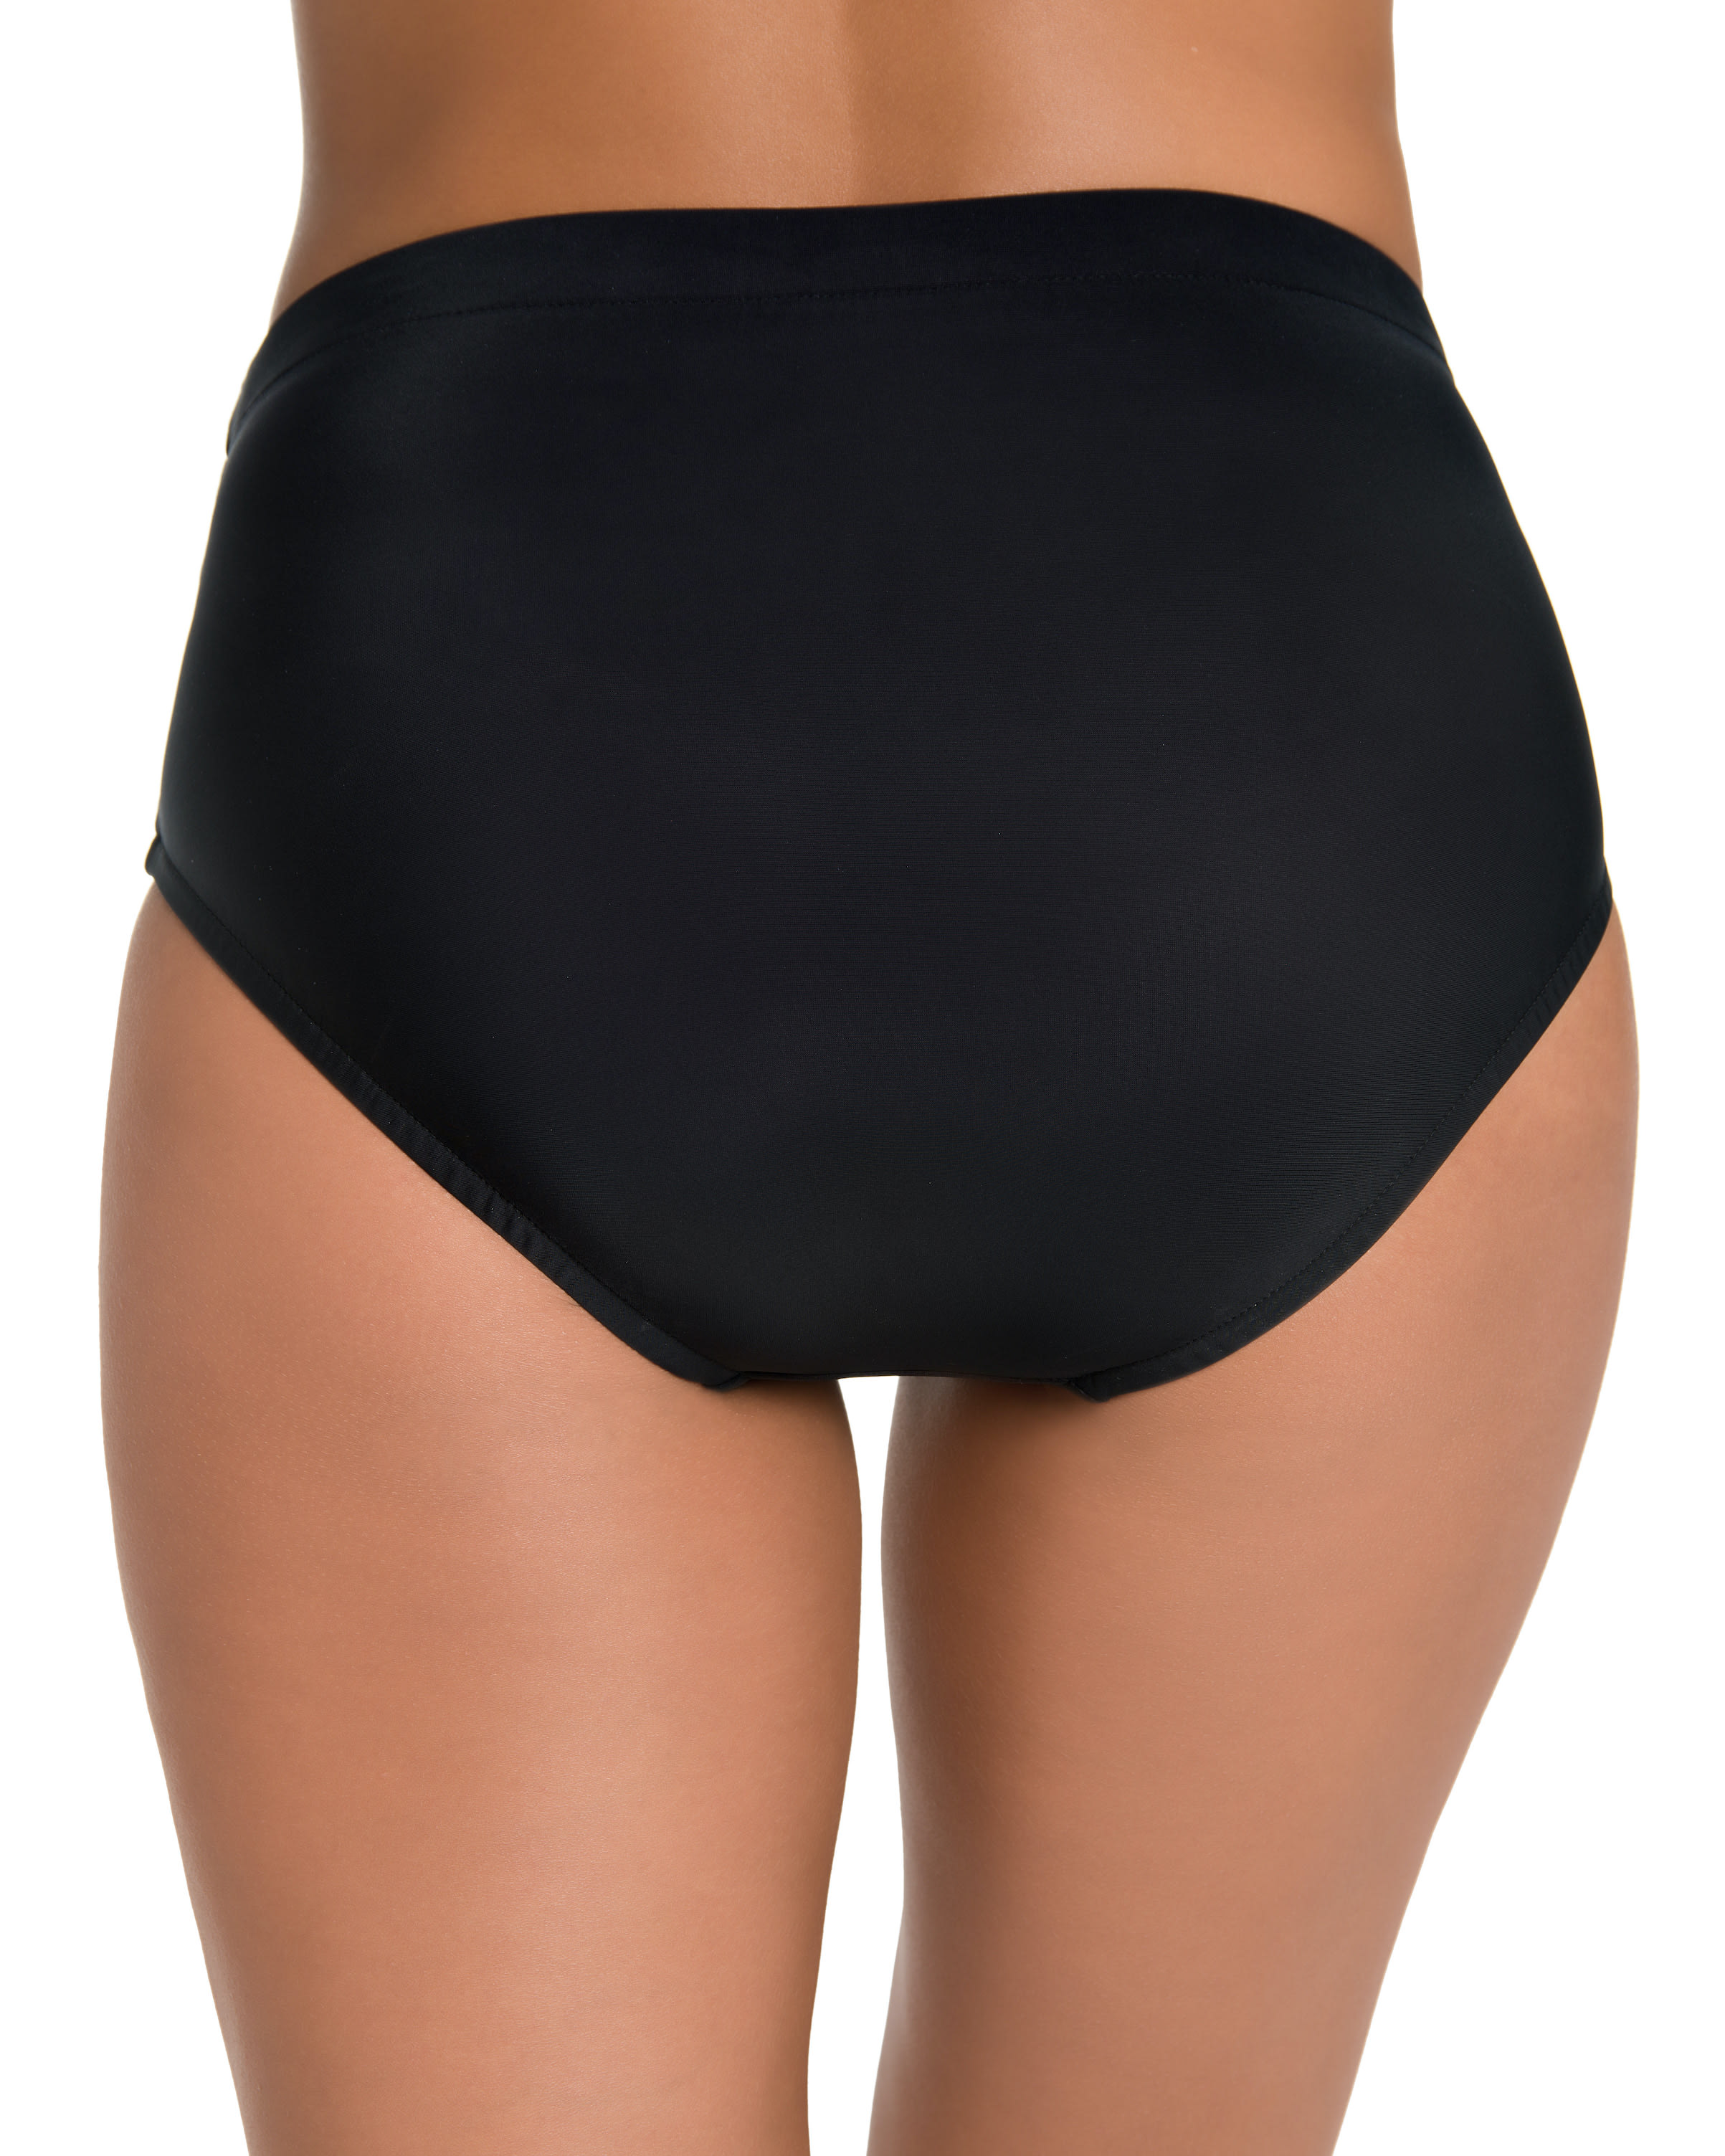 Penbrooke Swimsuit Brief Bottom - Misses - Black - Back